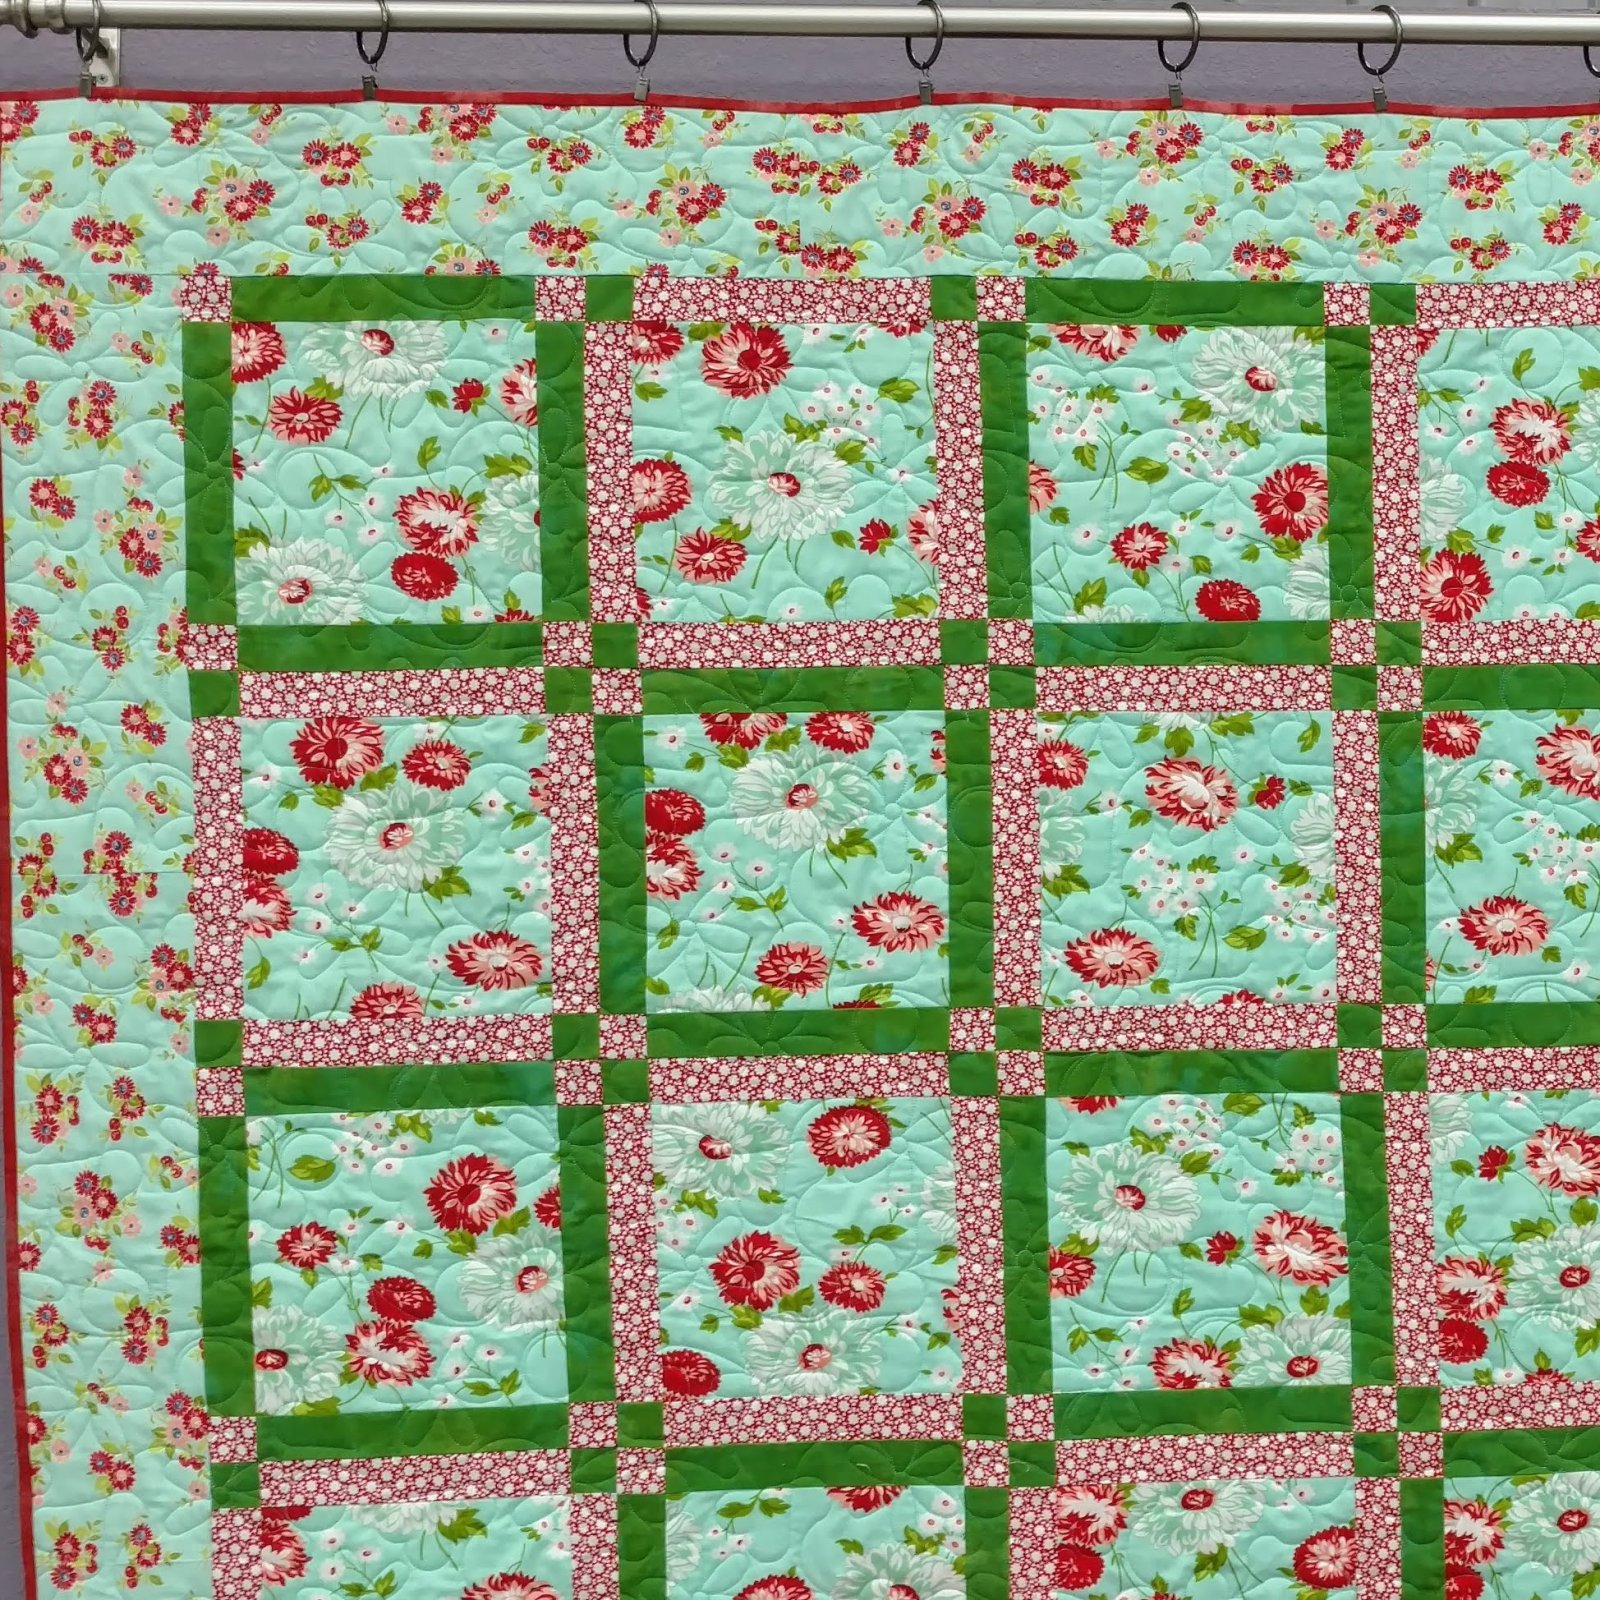 Wildly Carefree Quilt Kit